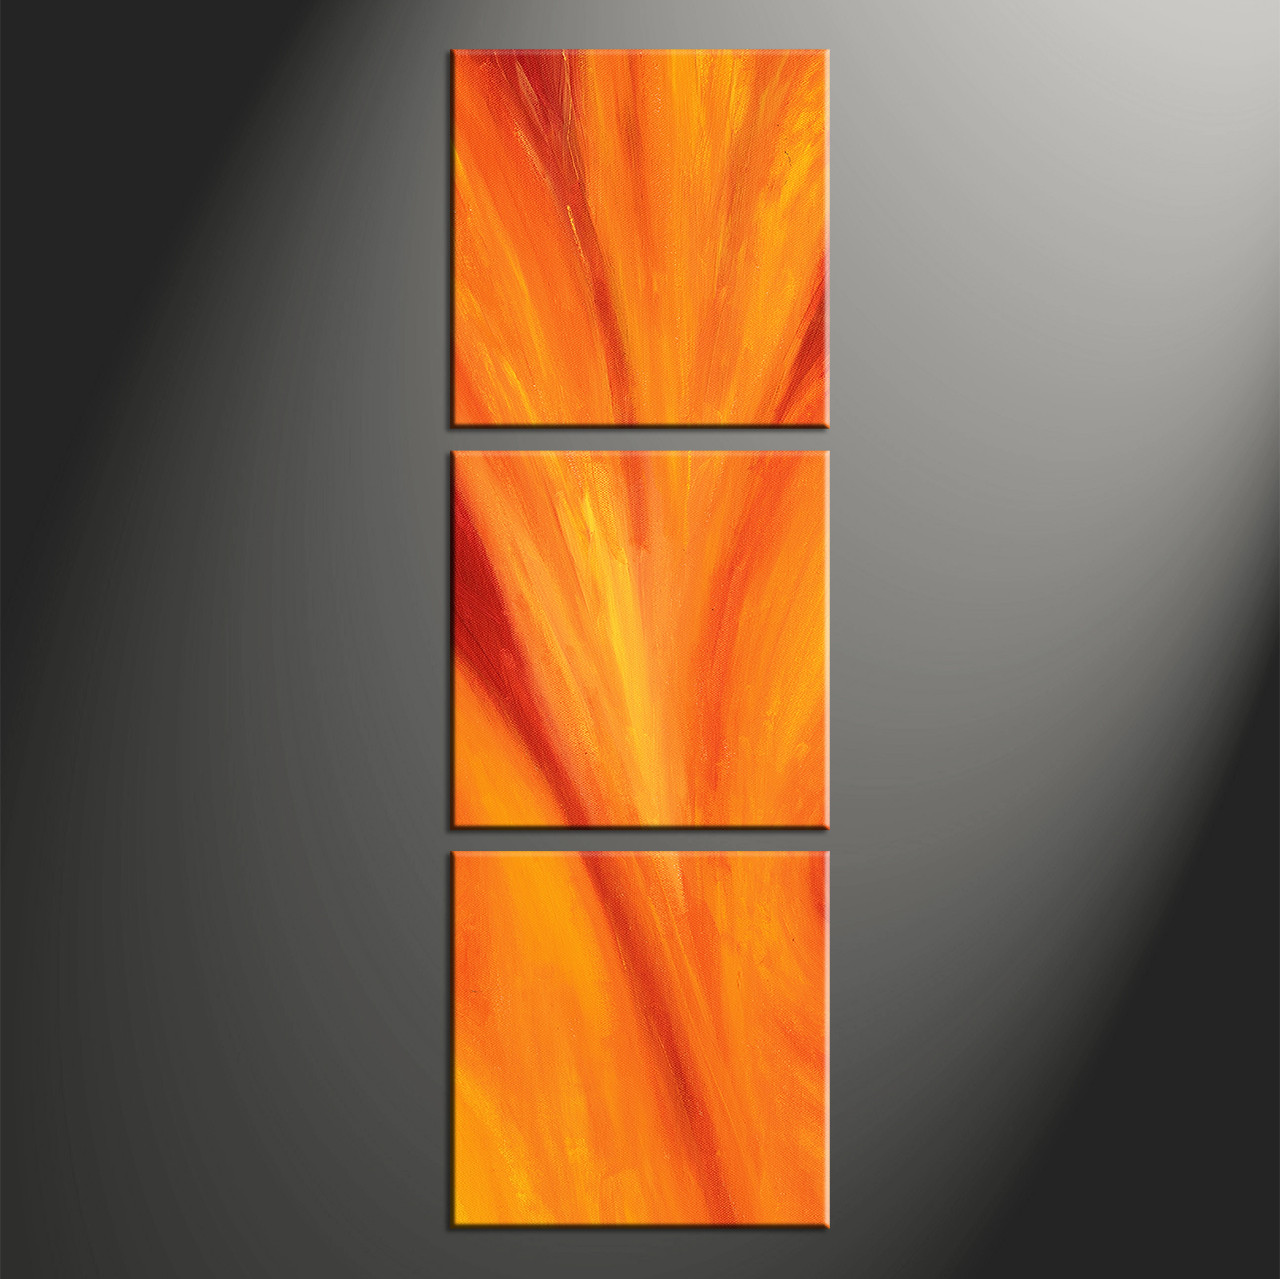 Abstract wall art painting - Home Decor 3 Piece Canvas Wall Art Abstract Photo Canvas Abstract Huge Pictures